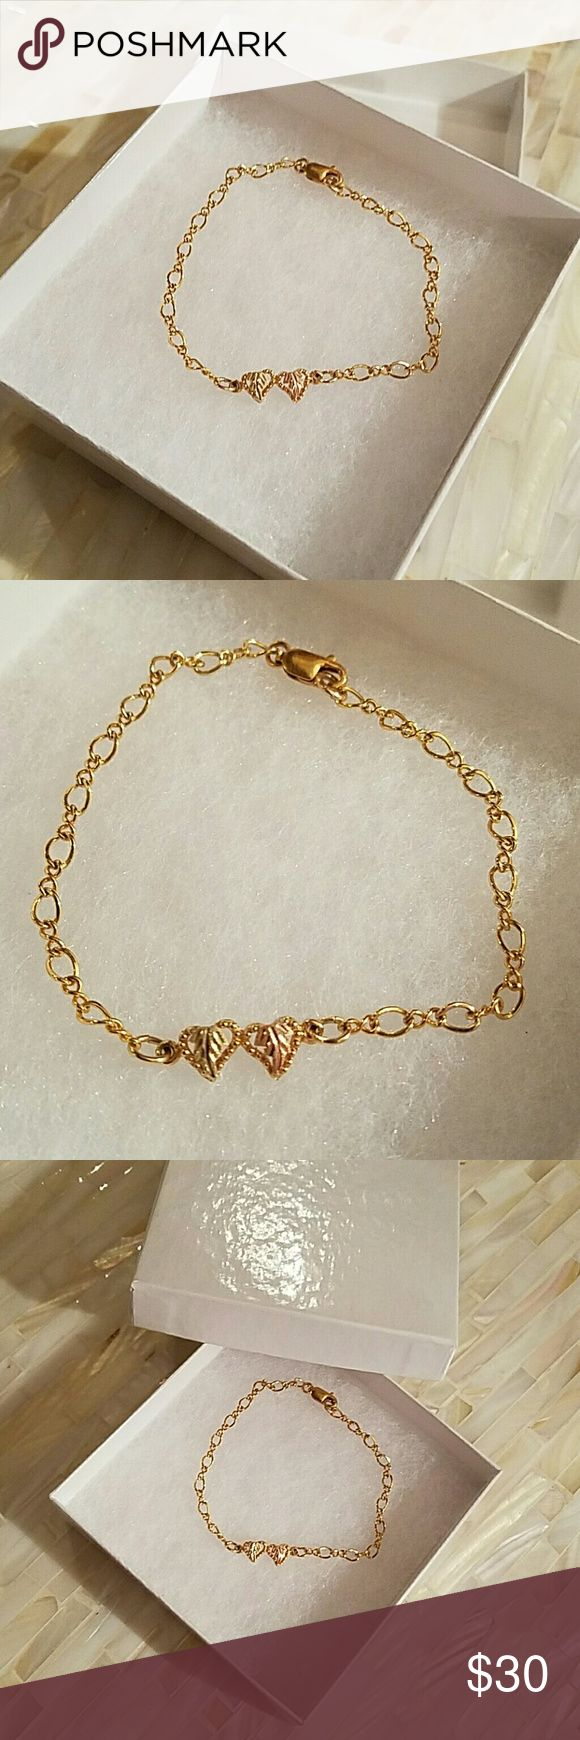 Black hills gold bracelet Blackhills gold bracelet, worn only a few times. Is in excellent condition Jewelry Bracelets